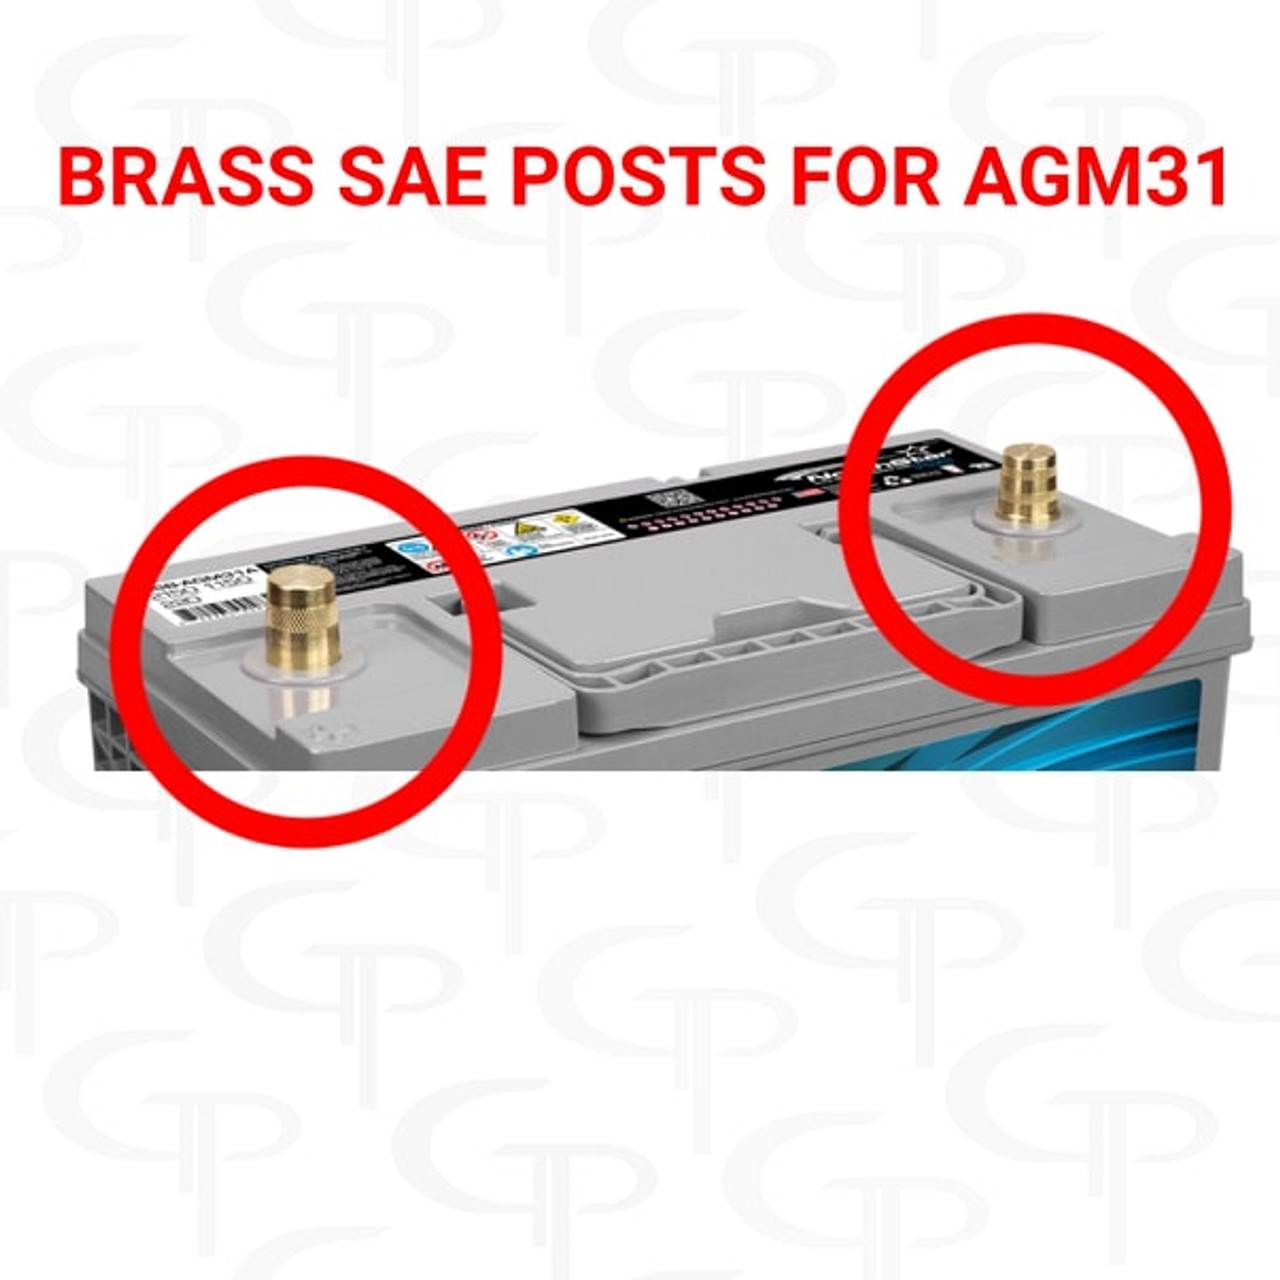 Brass SAE Posts for Northstar AGM31 (battery not included)